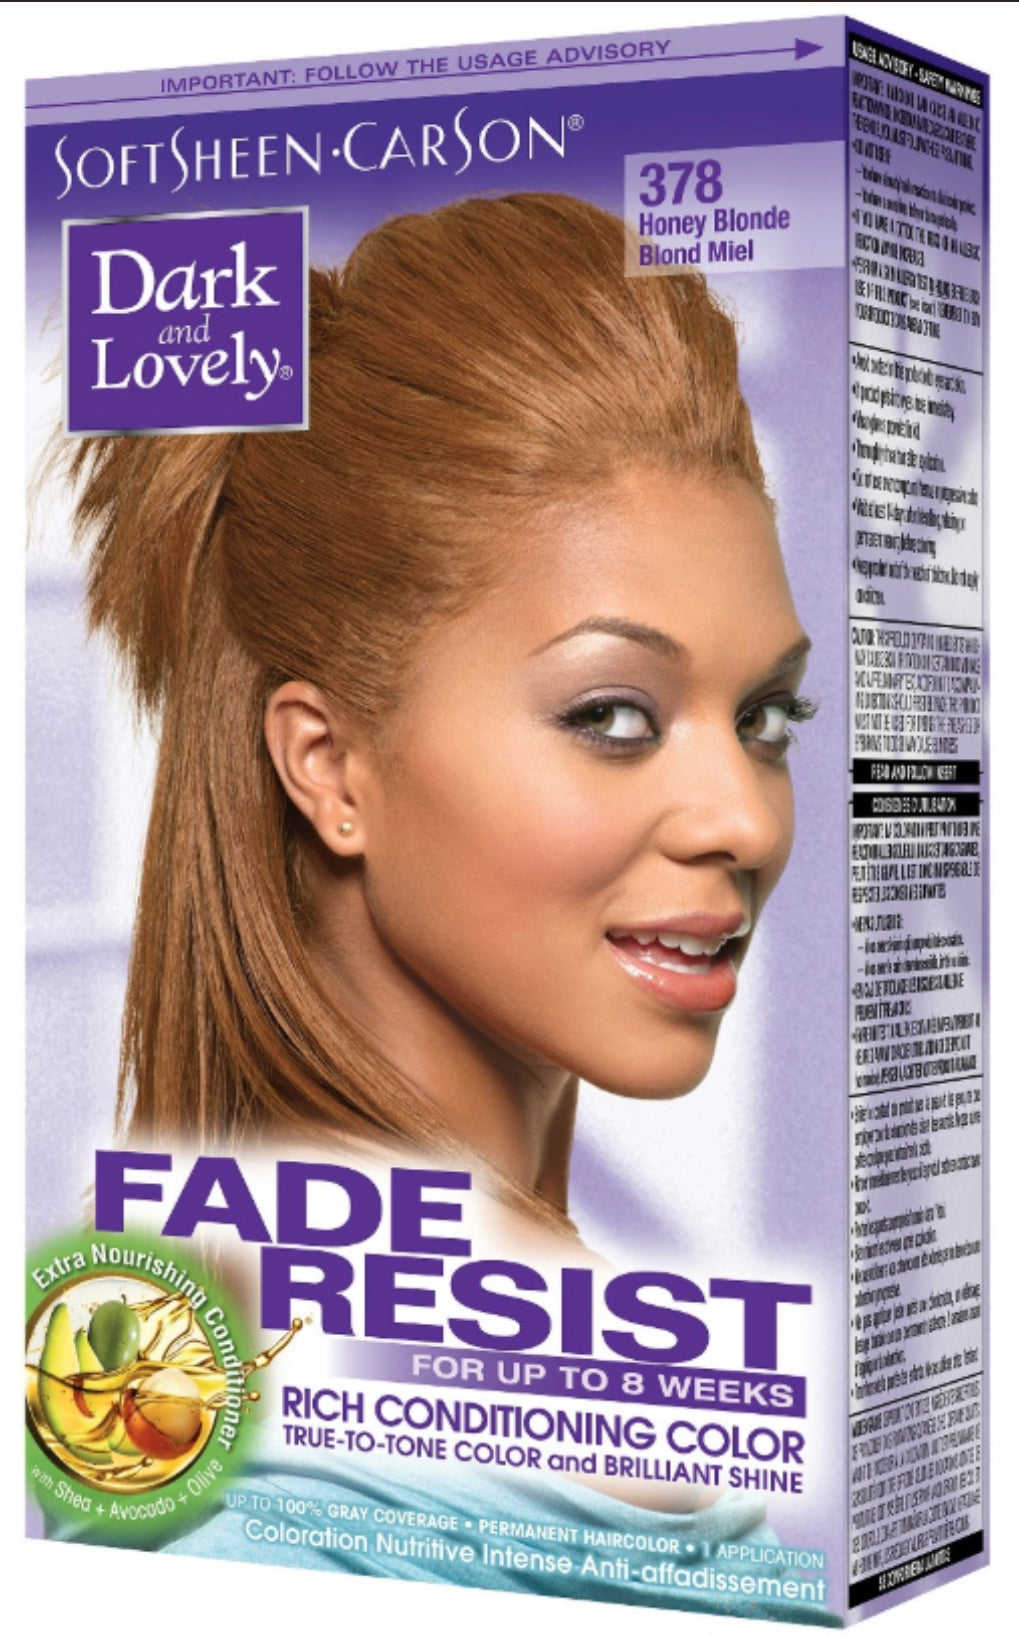 Dark and Lovely Fade Resist Hair Color Honey Blonde 378